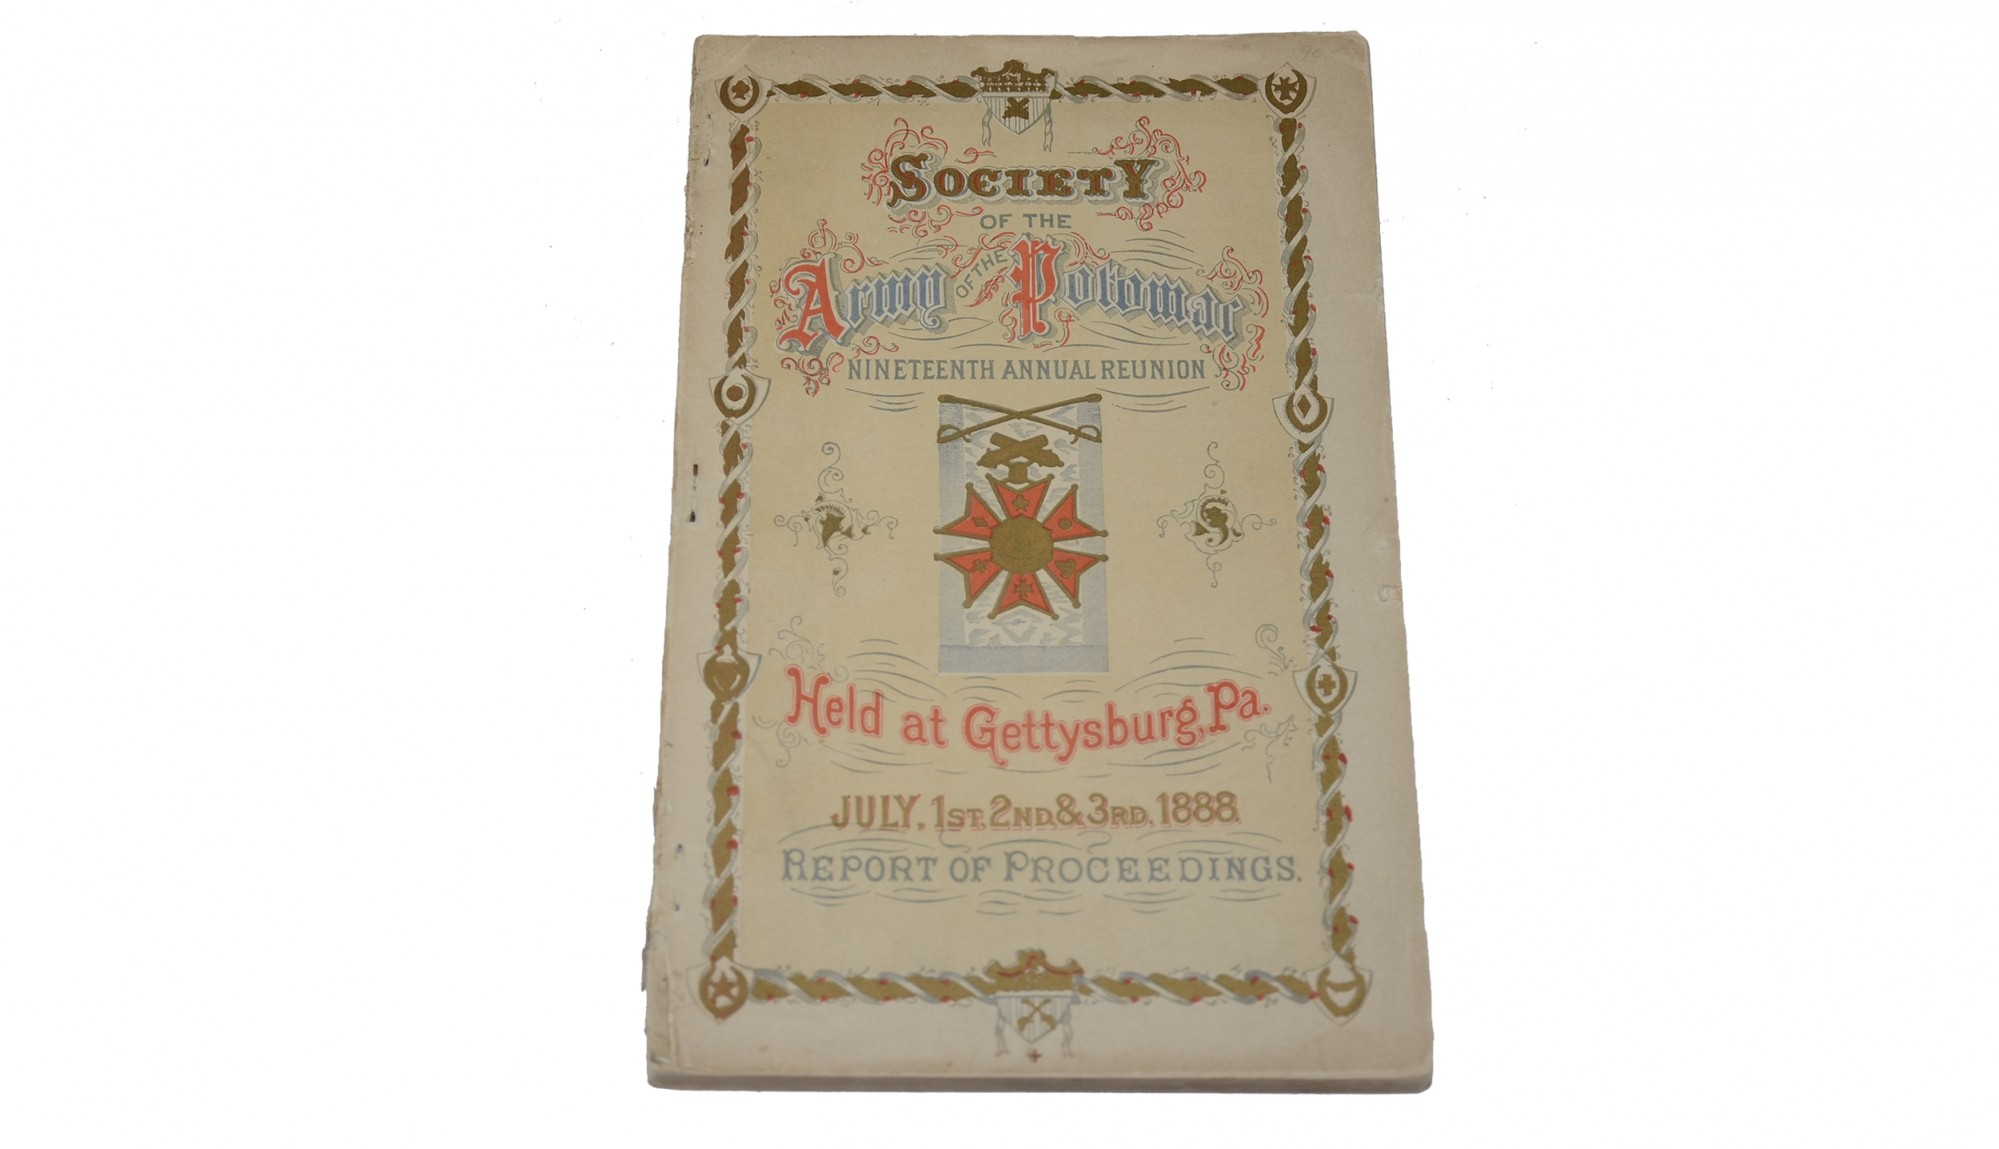 BOOKLET OF THE 1888 SOCIETY OF THE ARMY OF THE POTOMAC REUNION AT GETTYSBURG